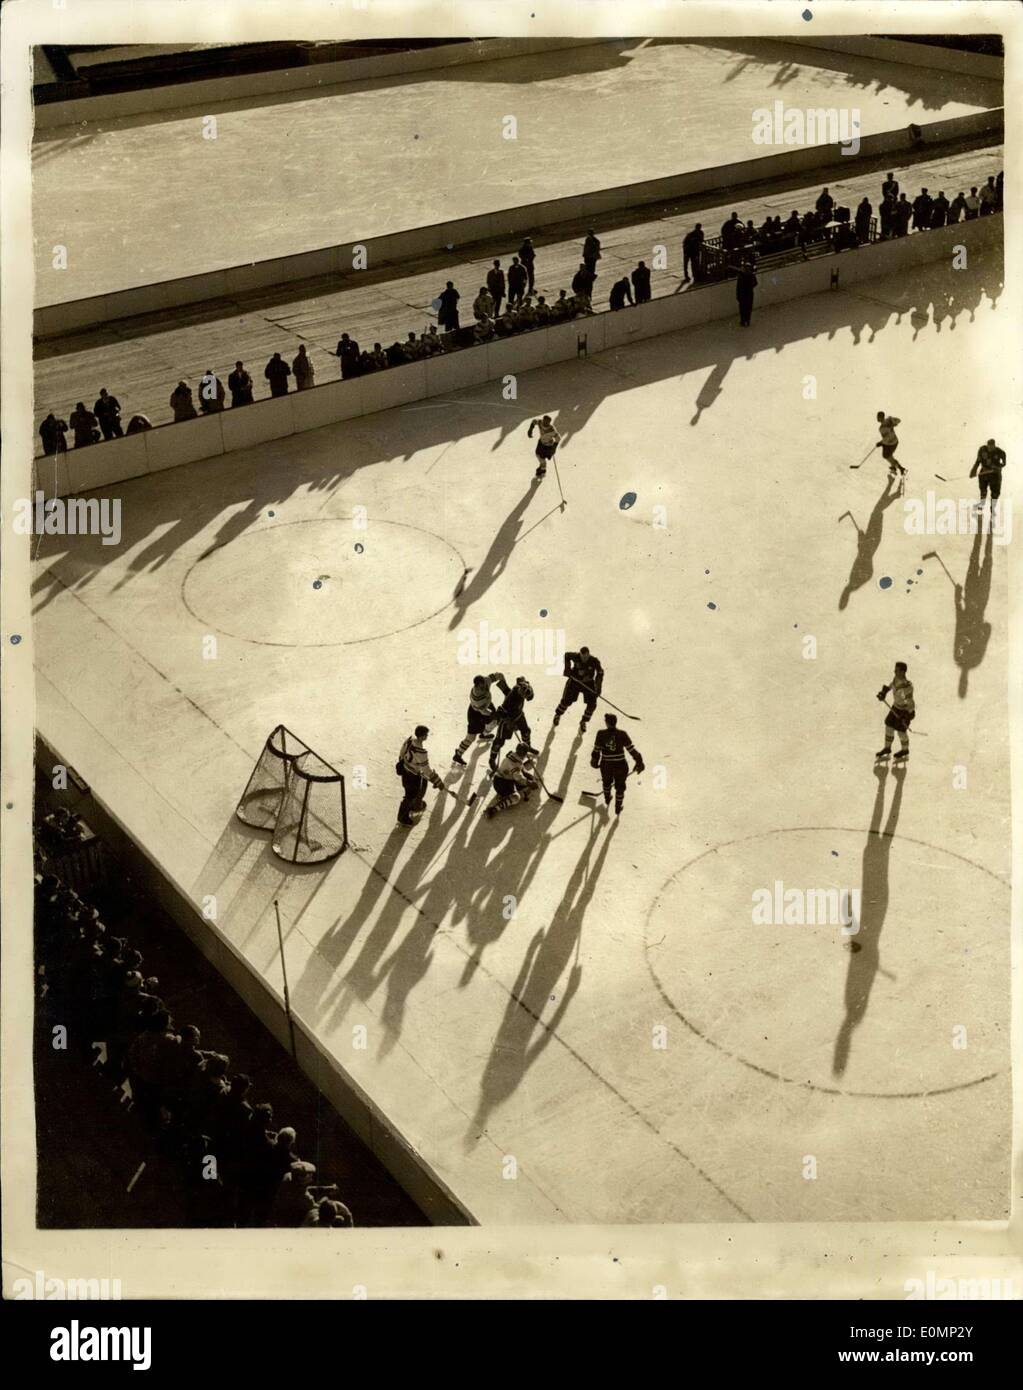 Jan. 30, 1956 - Winter Olympics At Cortina. Sunshine And Shadow On The Ice Rink. Photo shows Attractive sunshine and shadow study during the Ice Hockey match between the Unite States and Poland - during the Winter Olympic Games at Cortina. USA won 4 - 0. - Stock Image